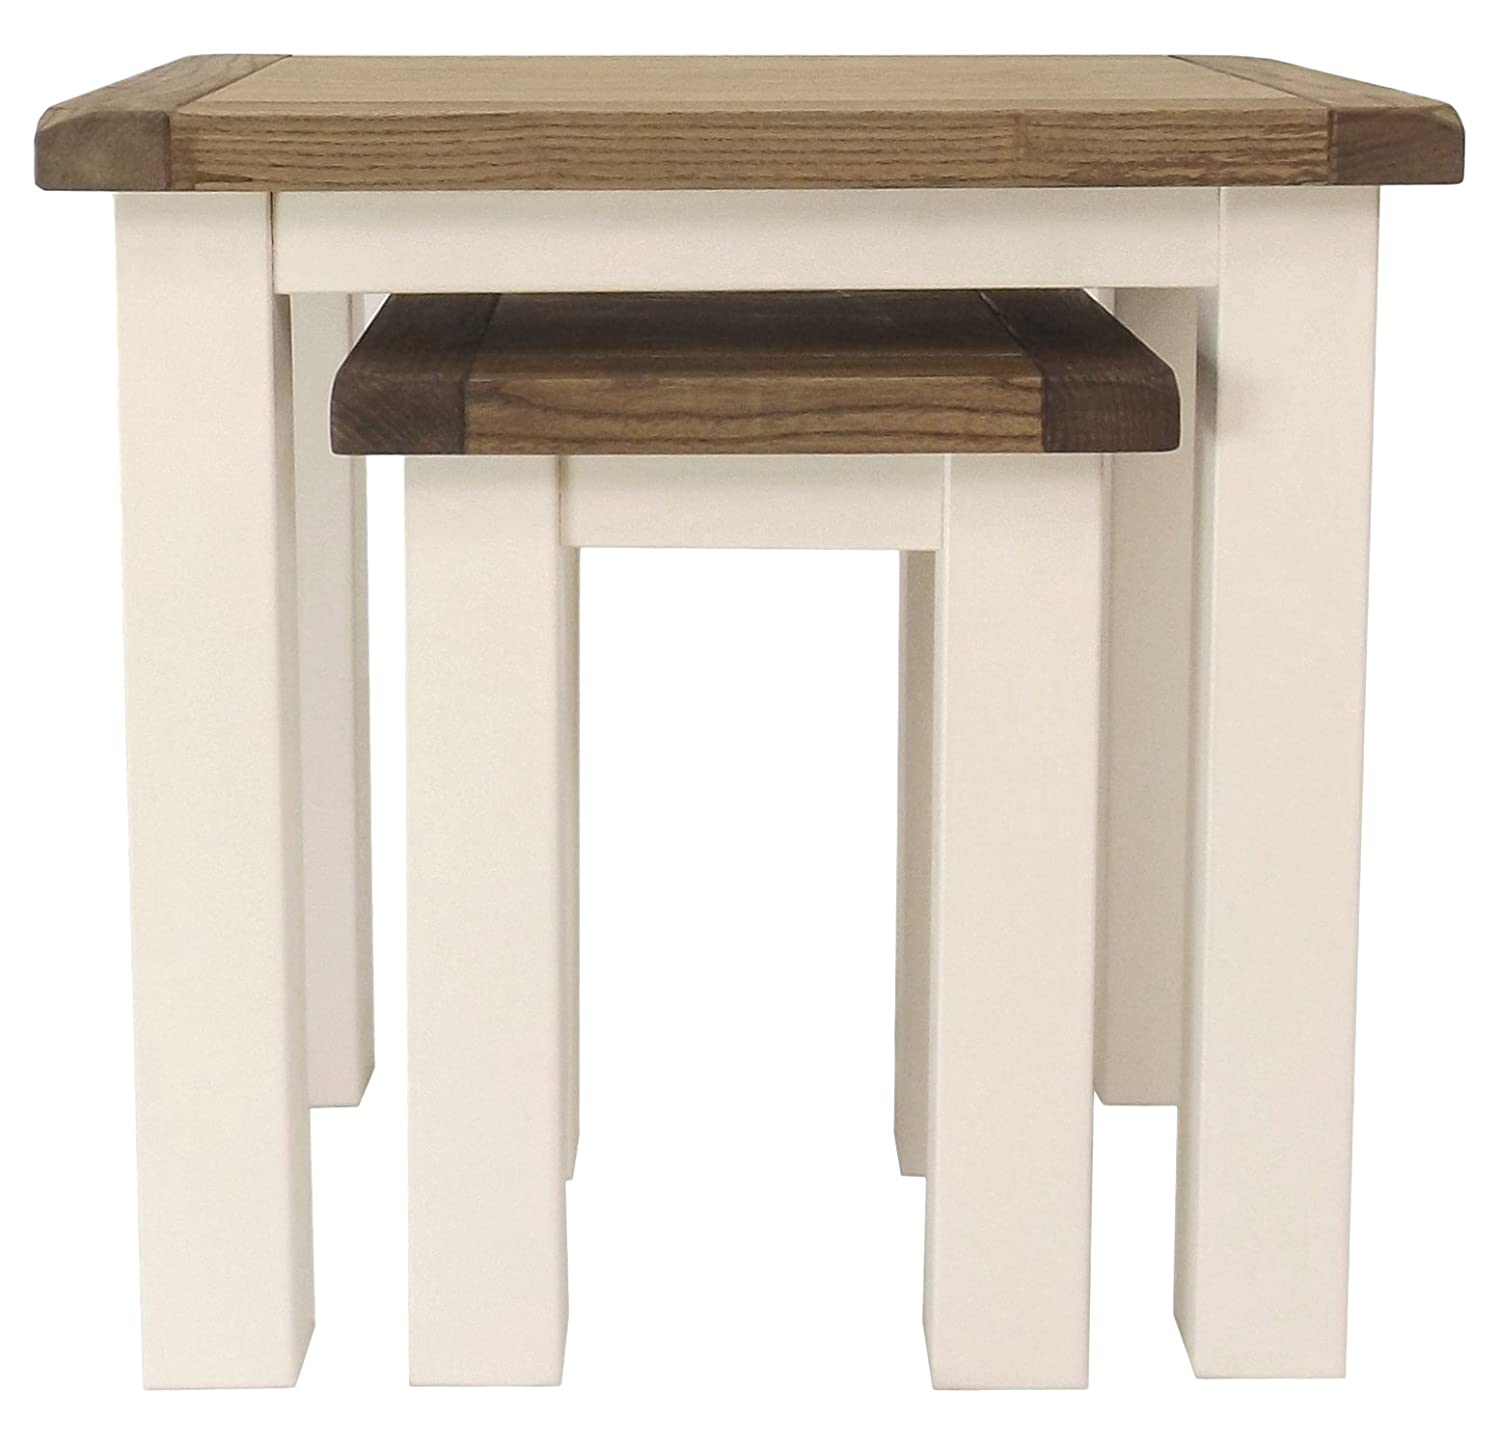 Cabinet Bits Nest of 2 Tables, Wood, White FNSC307